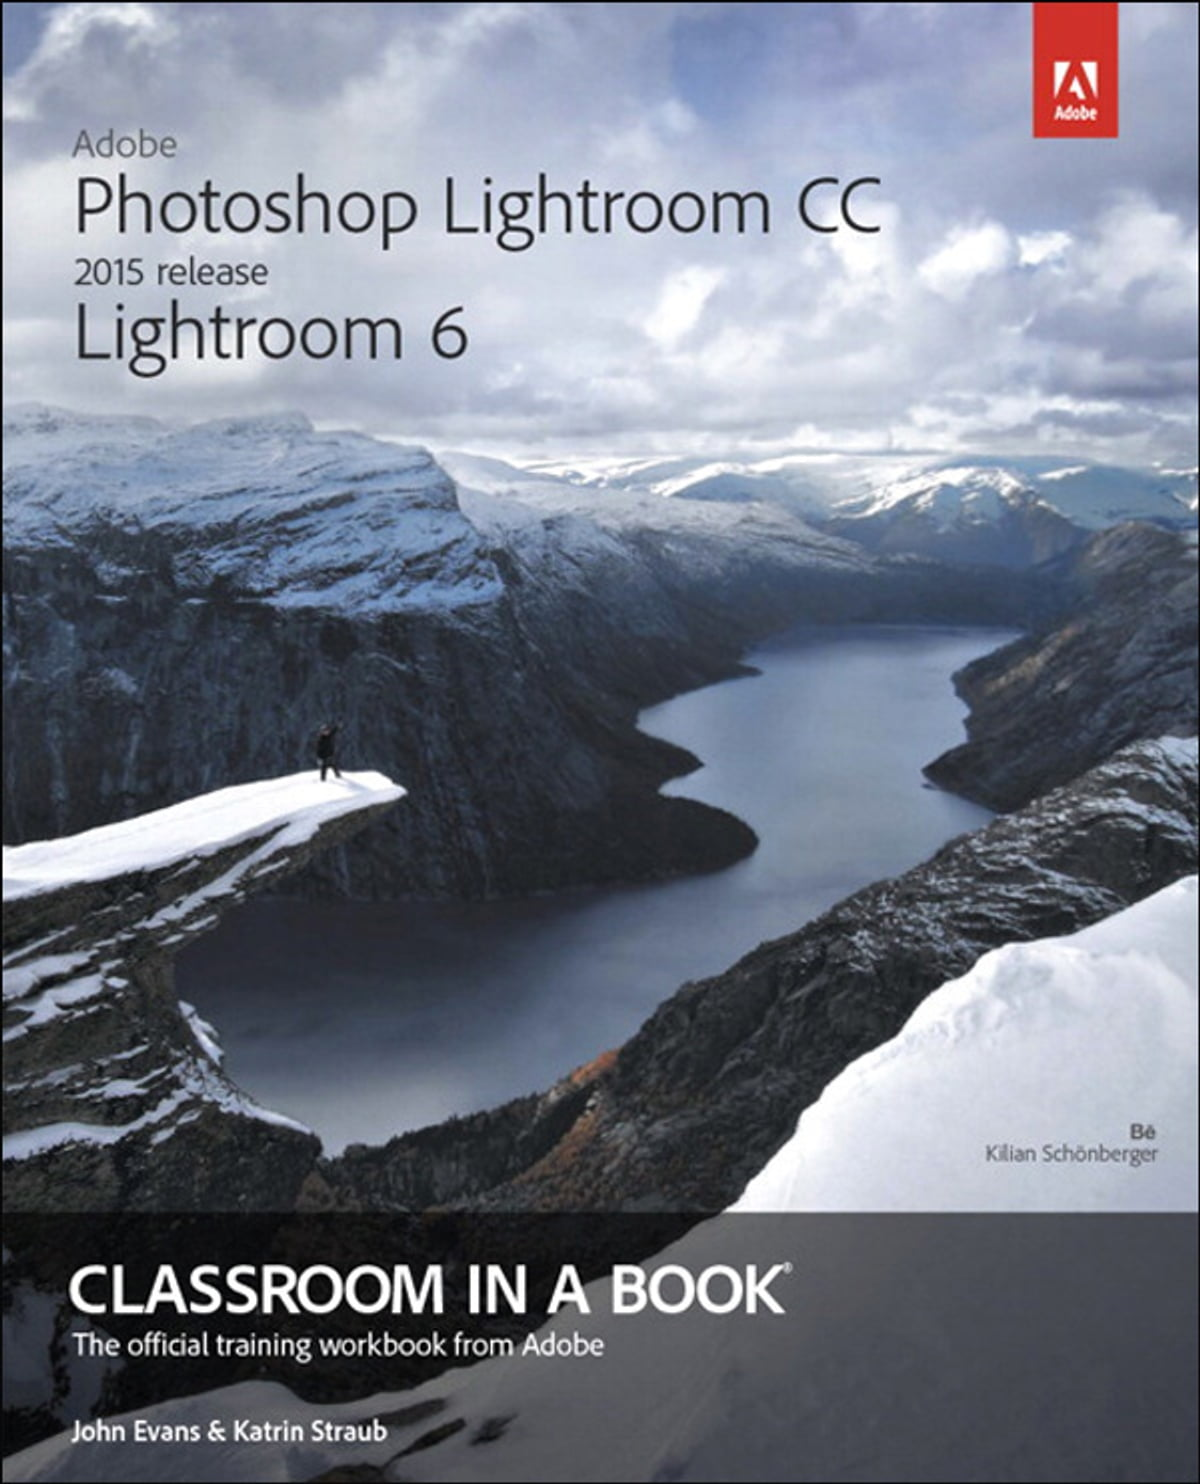 Adobe Photoshop Lightroom CC (2015 release) / Lightroom 6 Classroom in a  Book eBook by John Evans - 9780133924886 | Rakuten Kobo